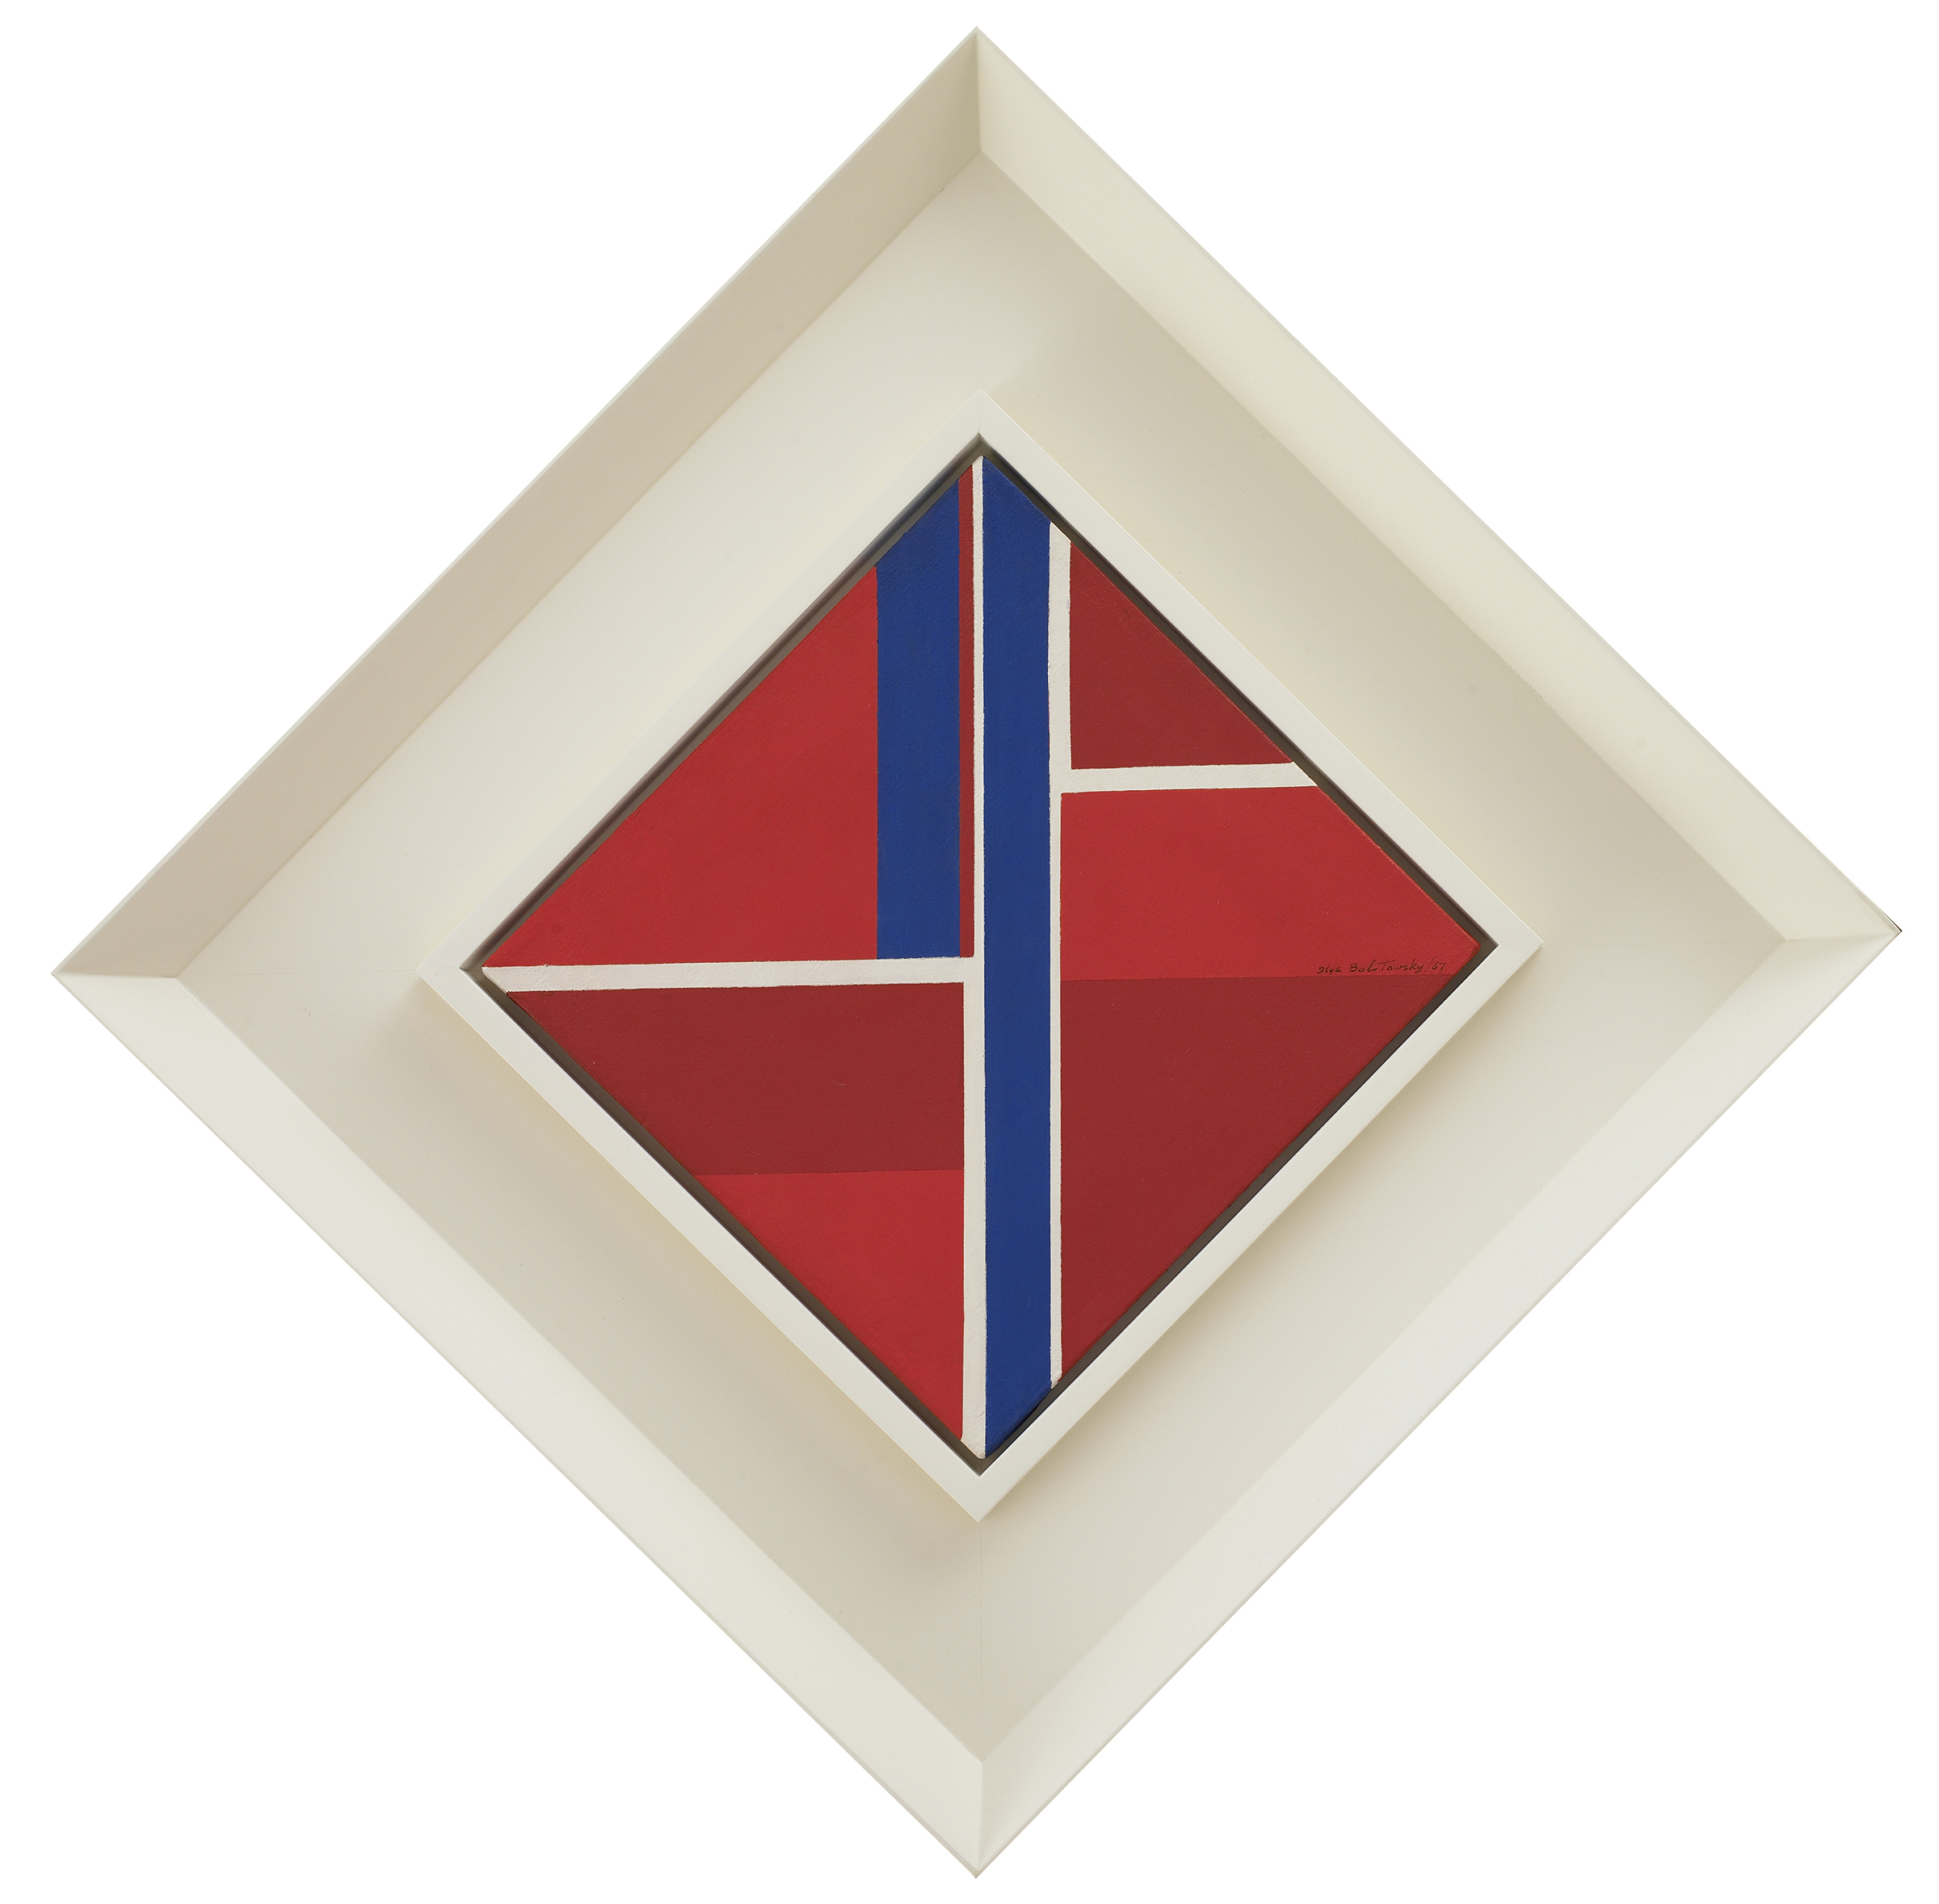 SOLD  Untitled ,  1967, oil on canvas, 12 x 12 inches